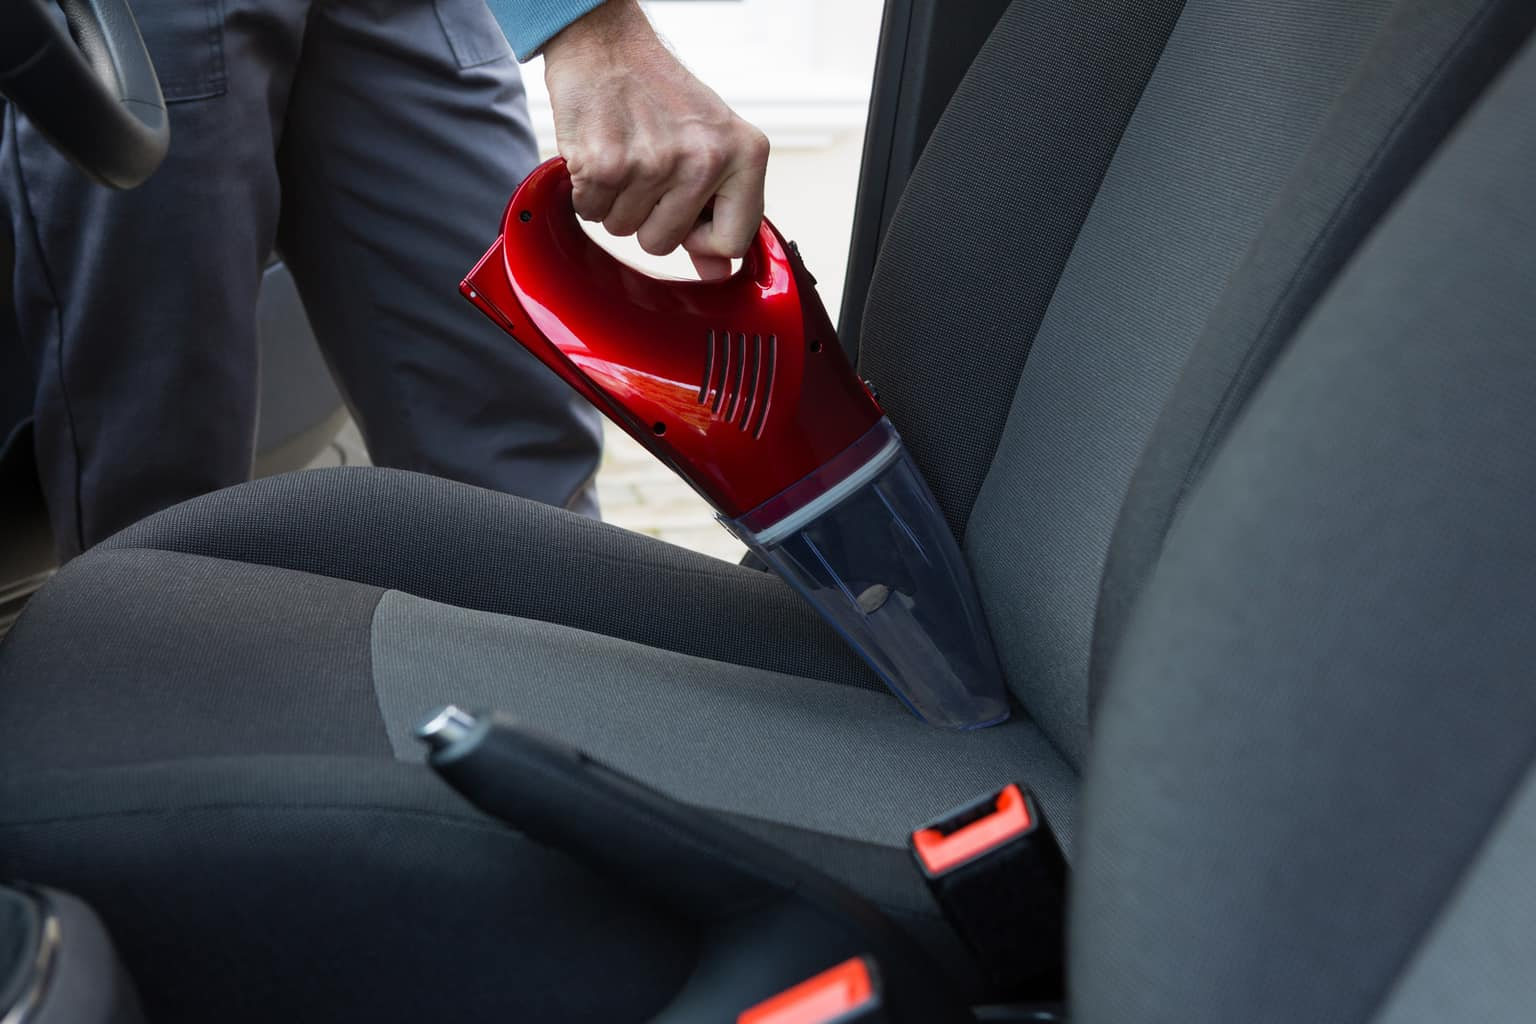 How To Keep Your Car Clean When You're Busy 1